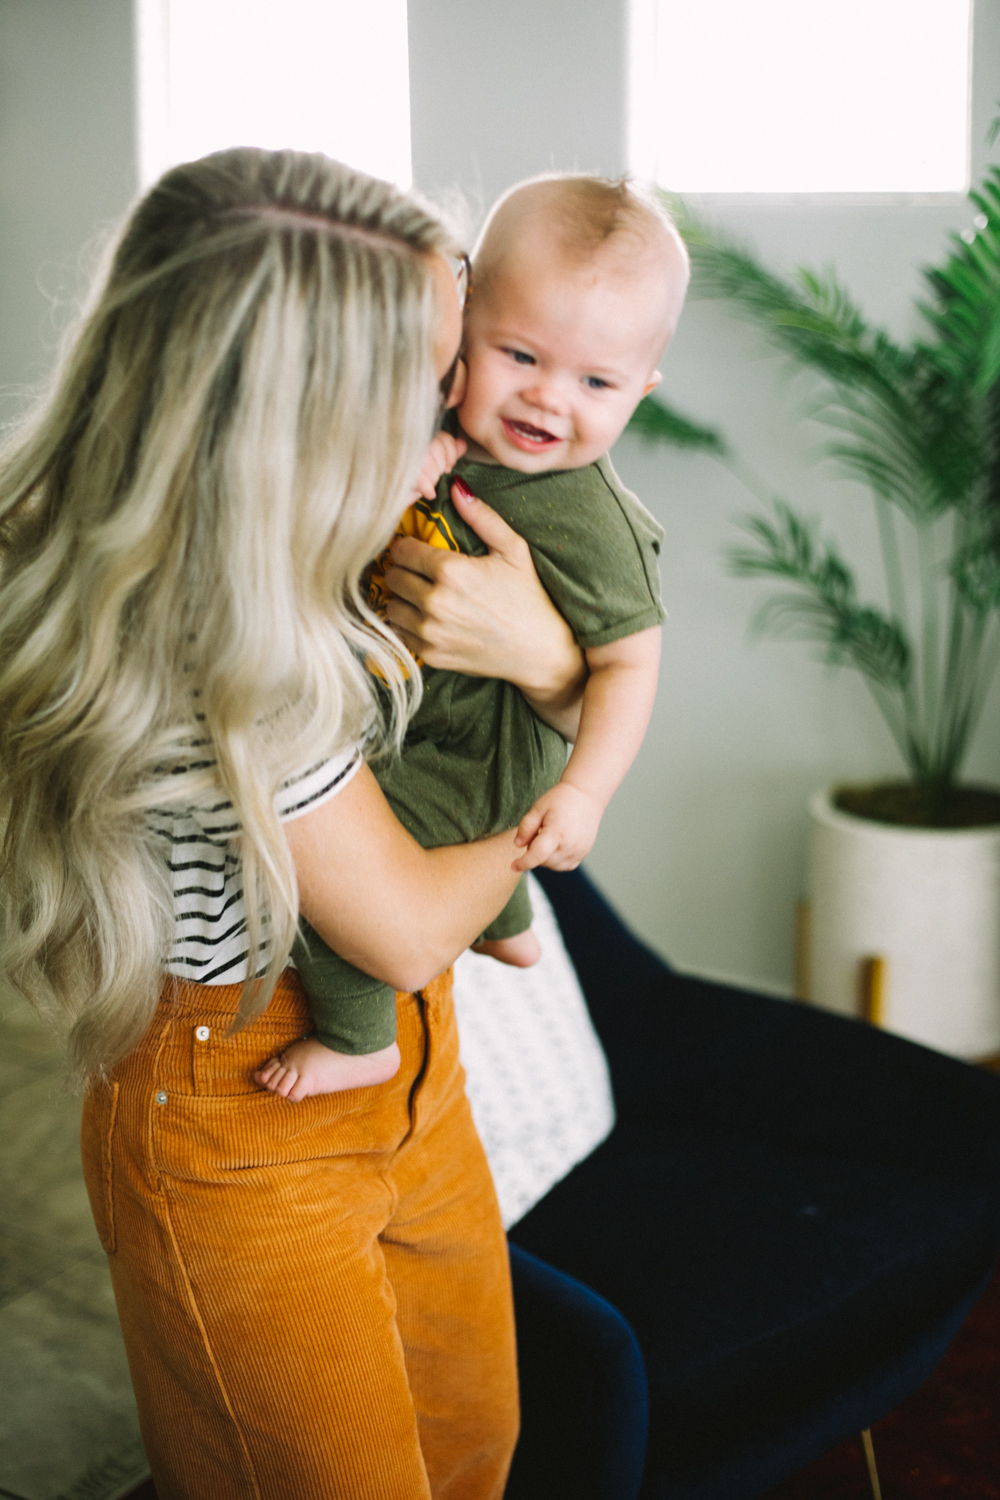 How to Lose Baby Weight featured by popular Las Vegas life and style bloggers, Life of a Sister